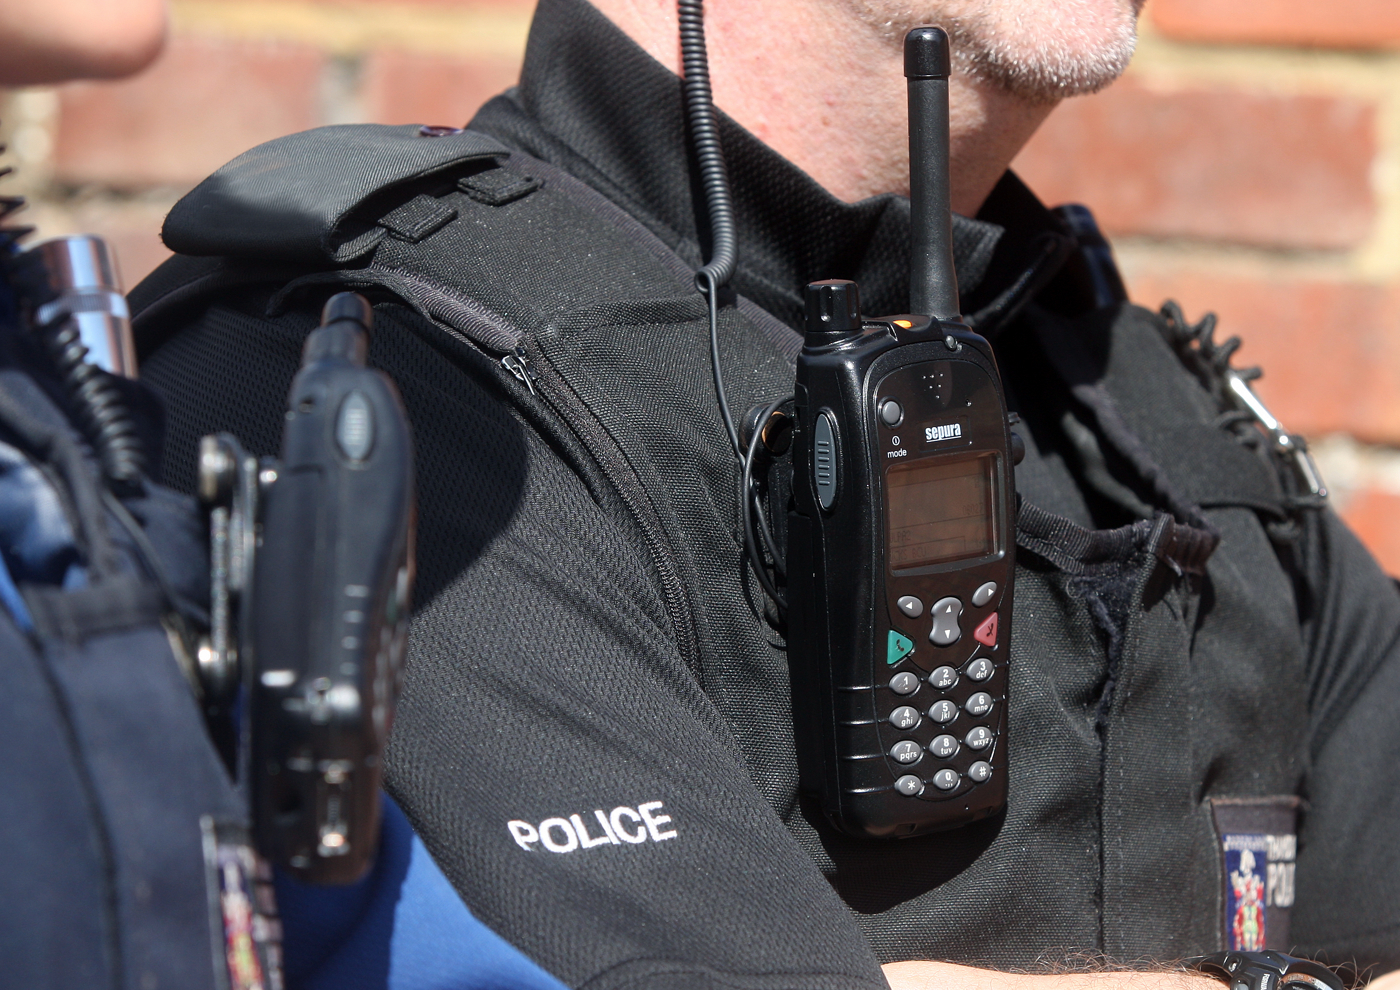 Figures reveal police numbers have been cut by 15 per cent since 2010